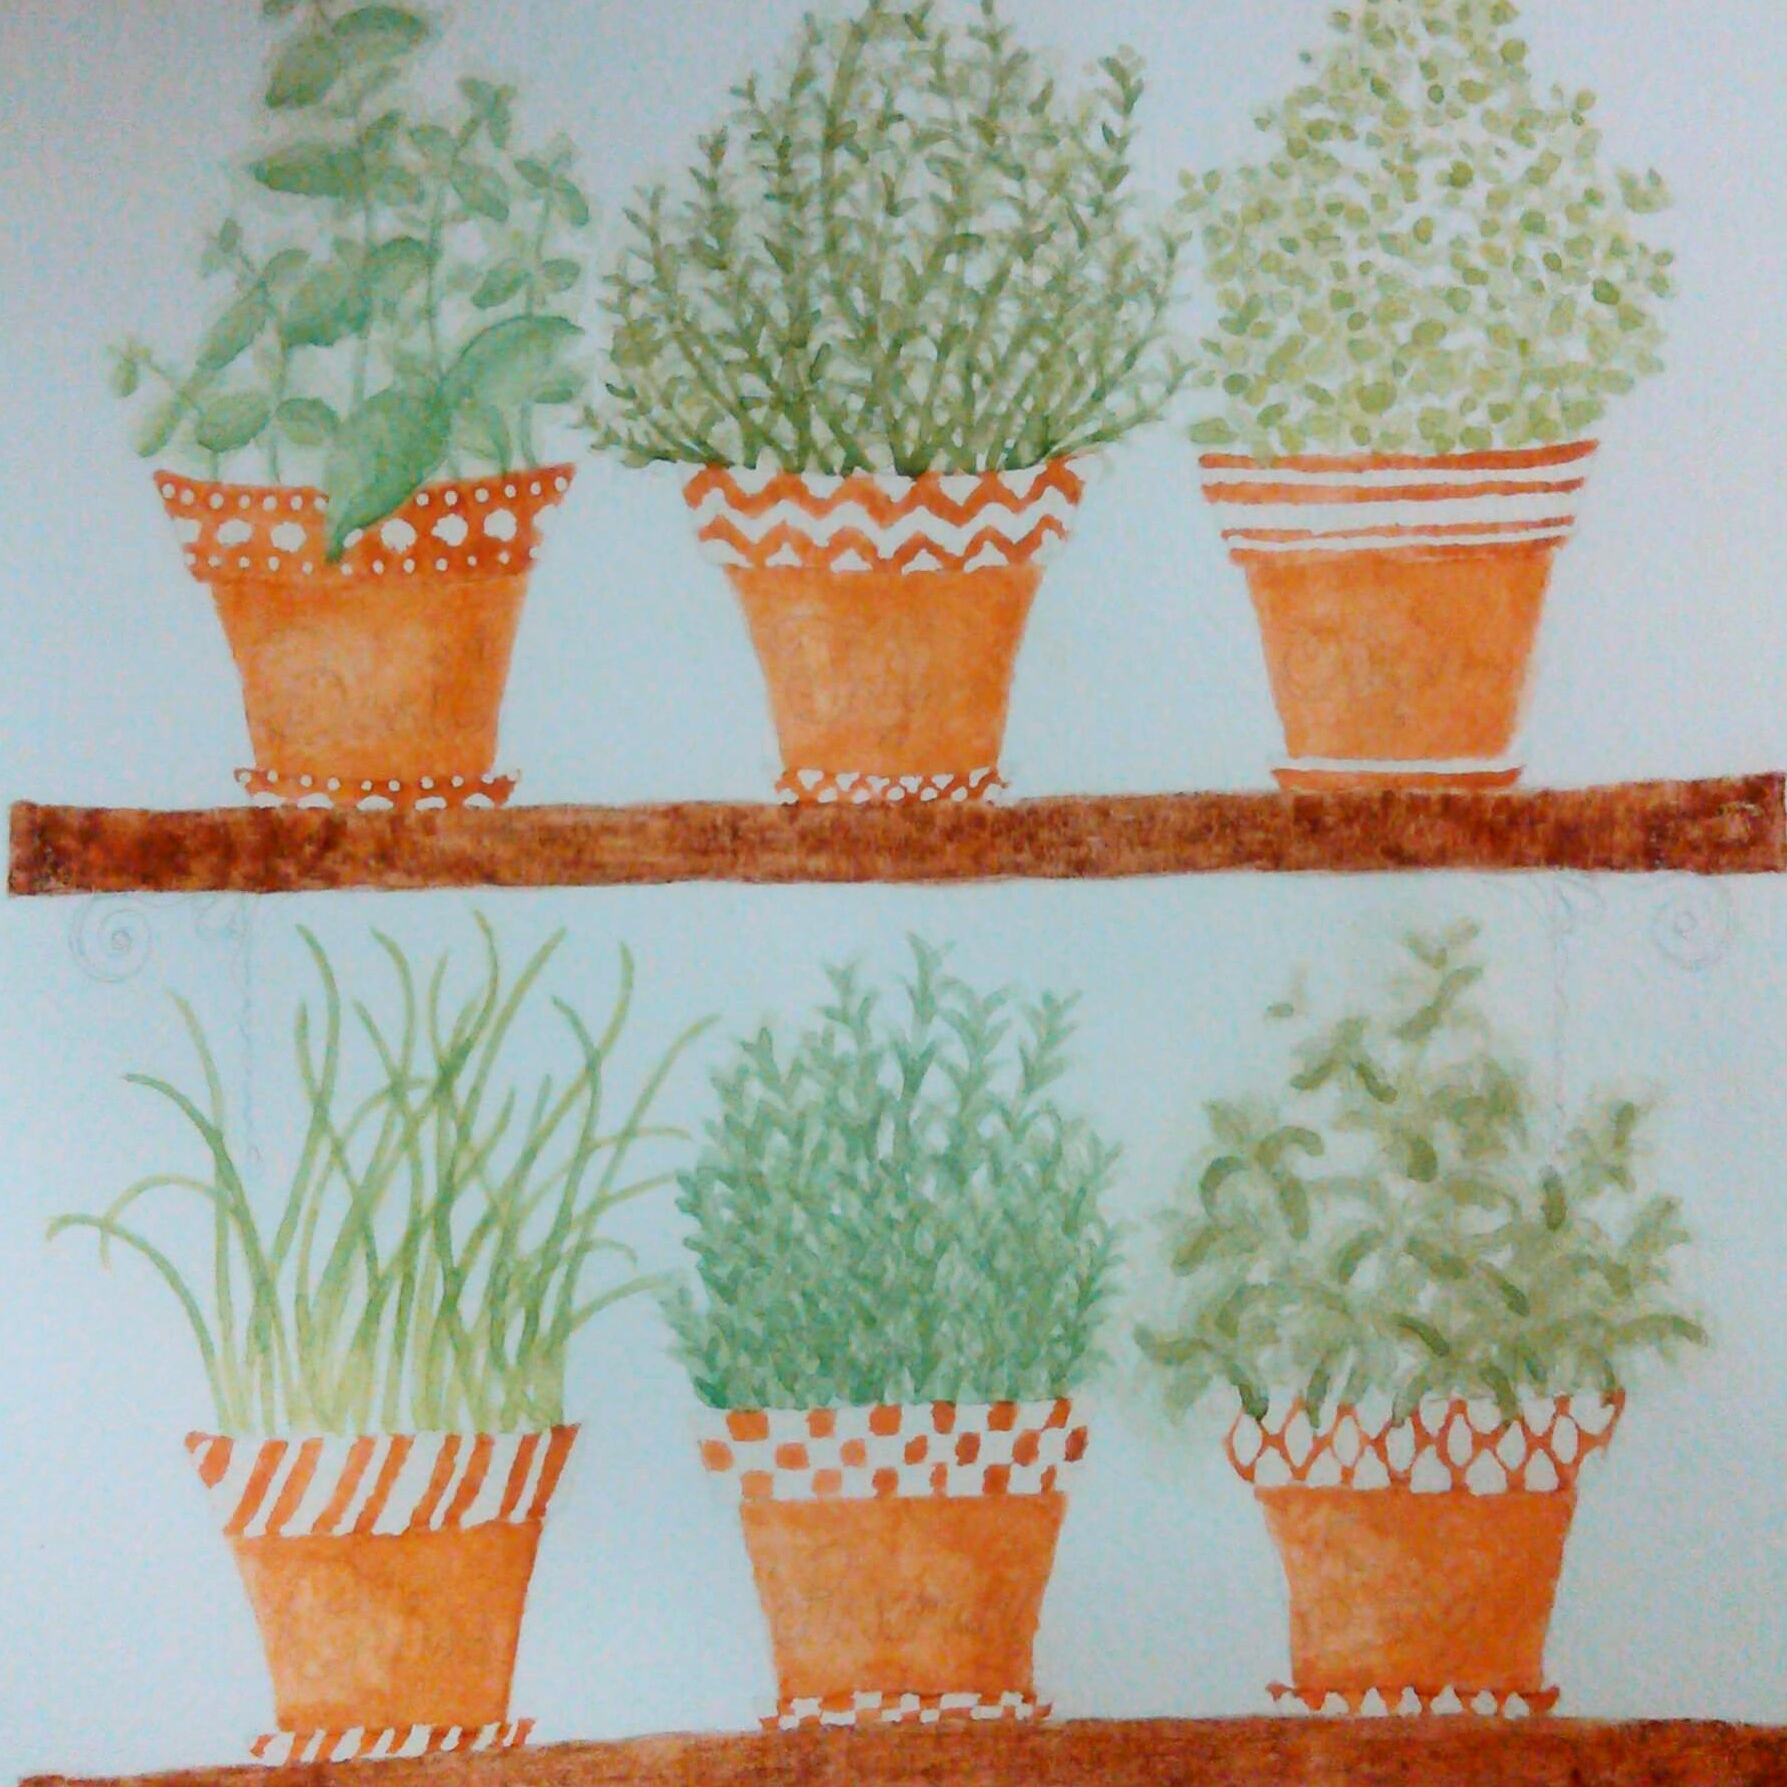 Watercolor herbs in terra cotta pots painting by Shalom Schultz Designs. Potted garden. Geometric patterns art.